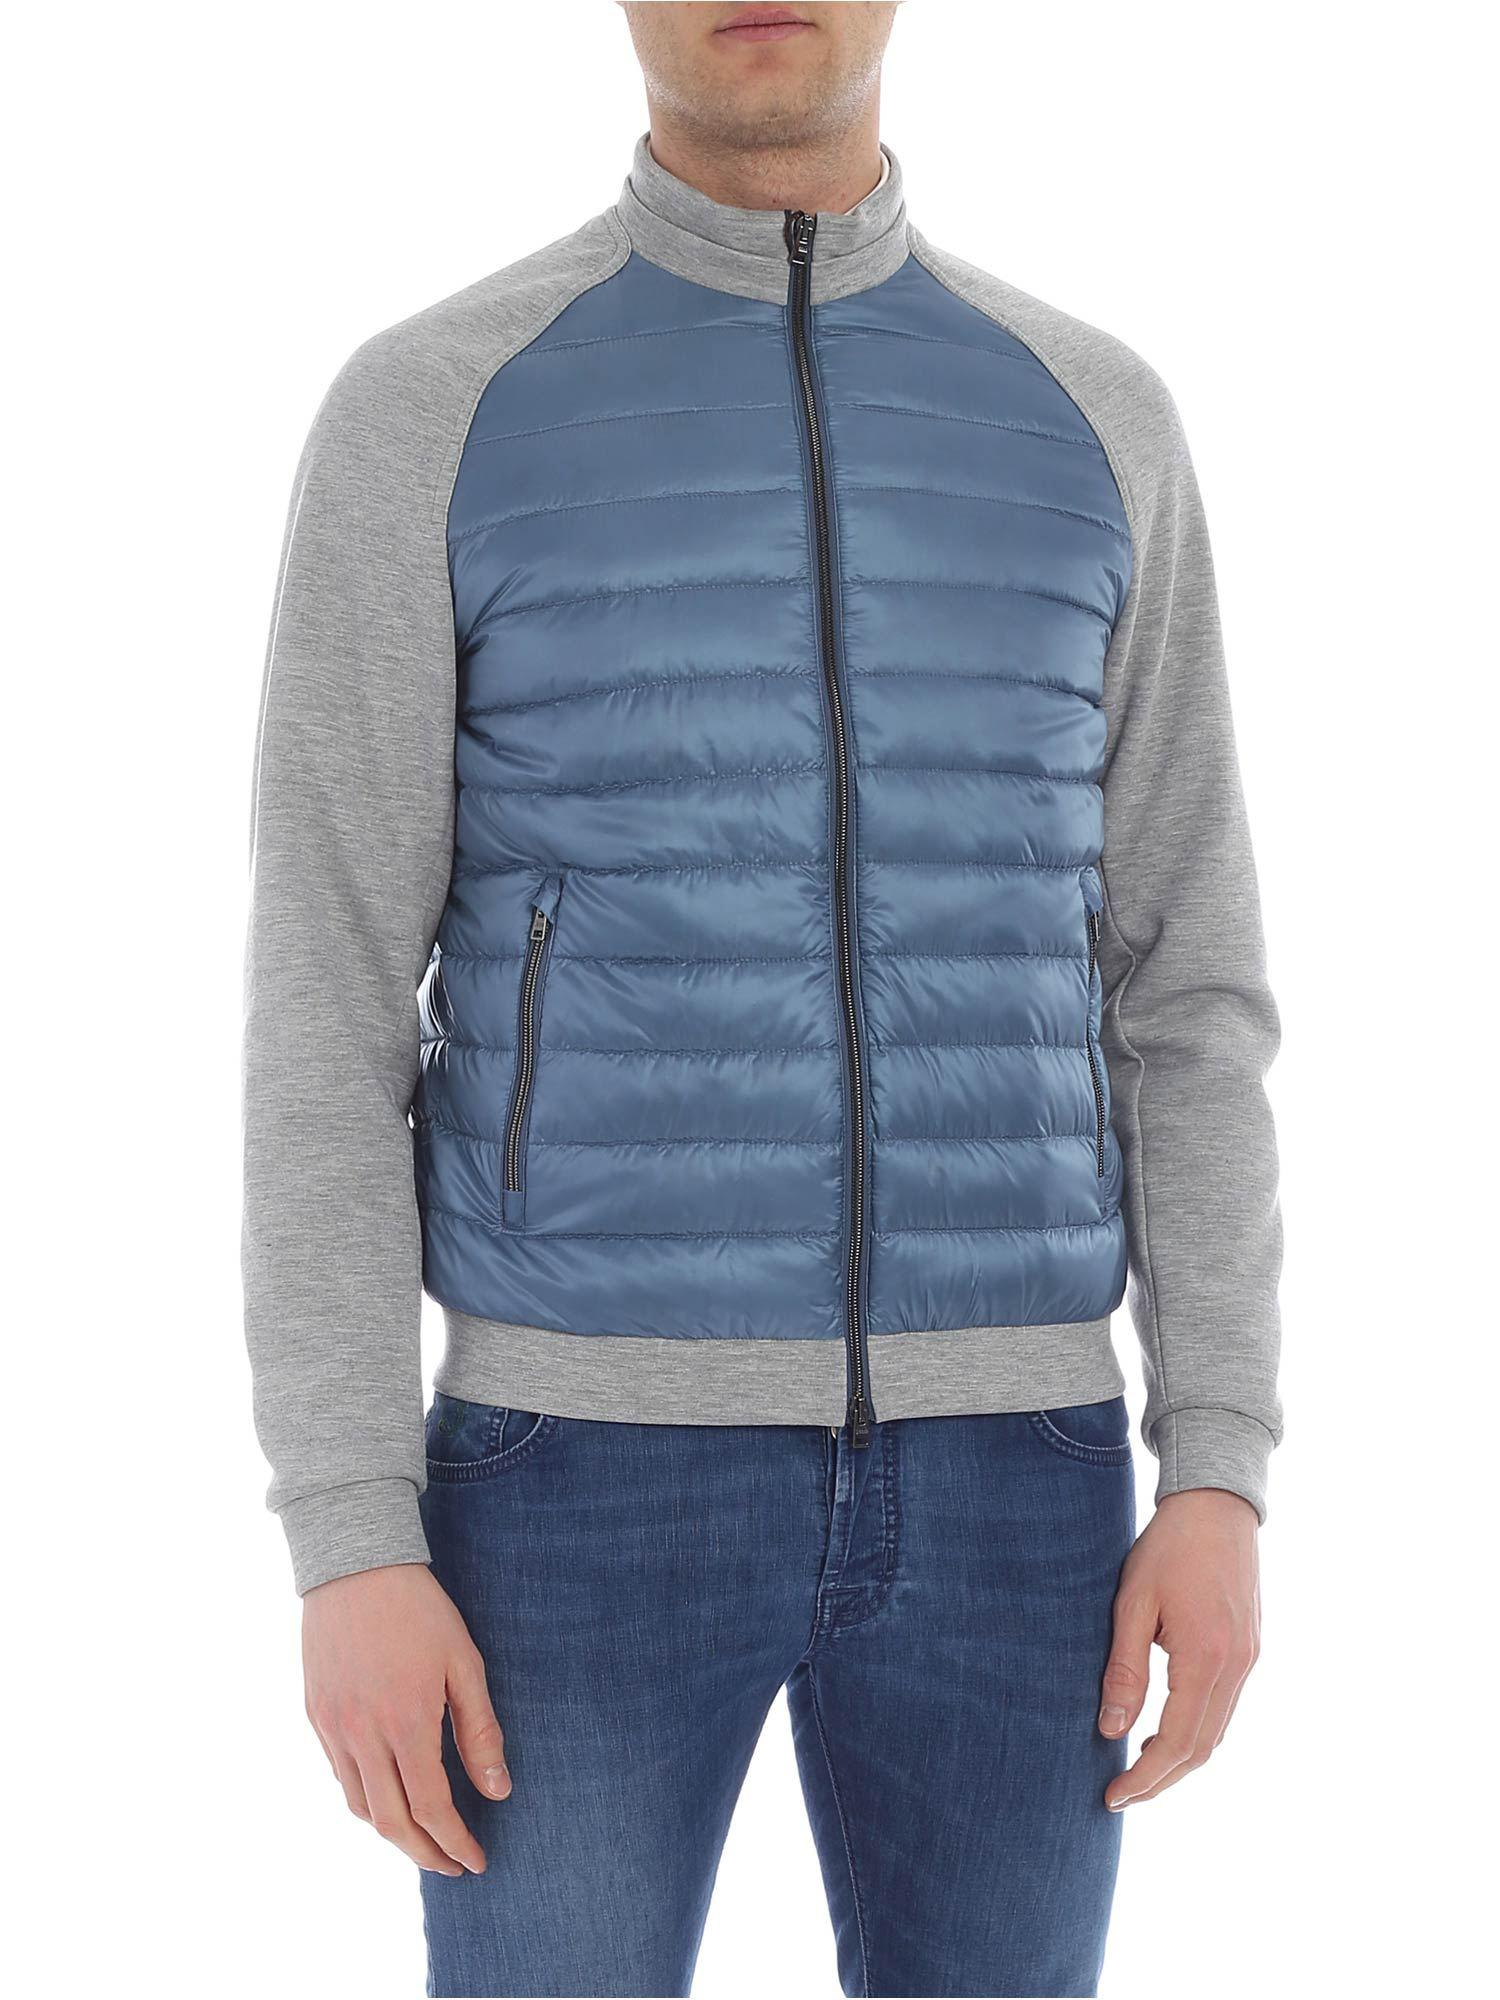 2e258e425 herno-blue-Light-Blue-Down-Jacket-With-Grey-Cotton-Inserts.jpeg